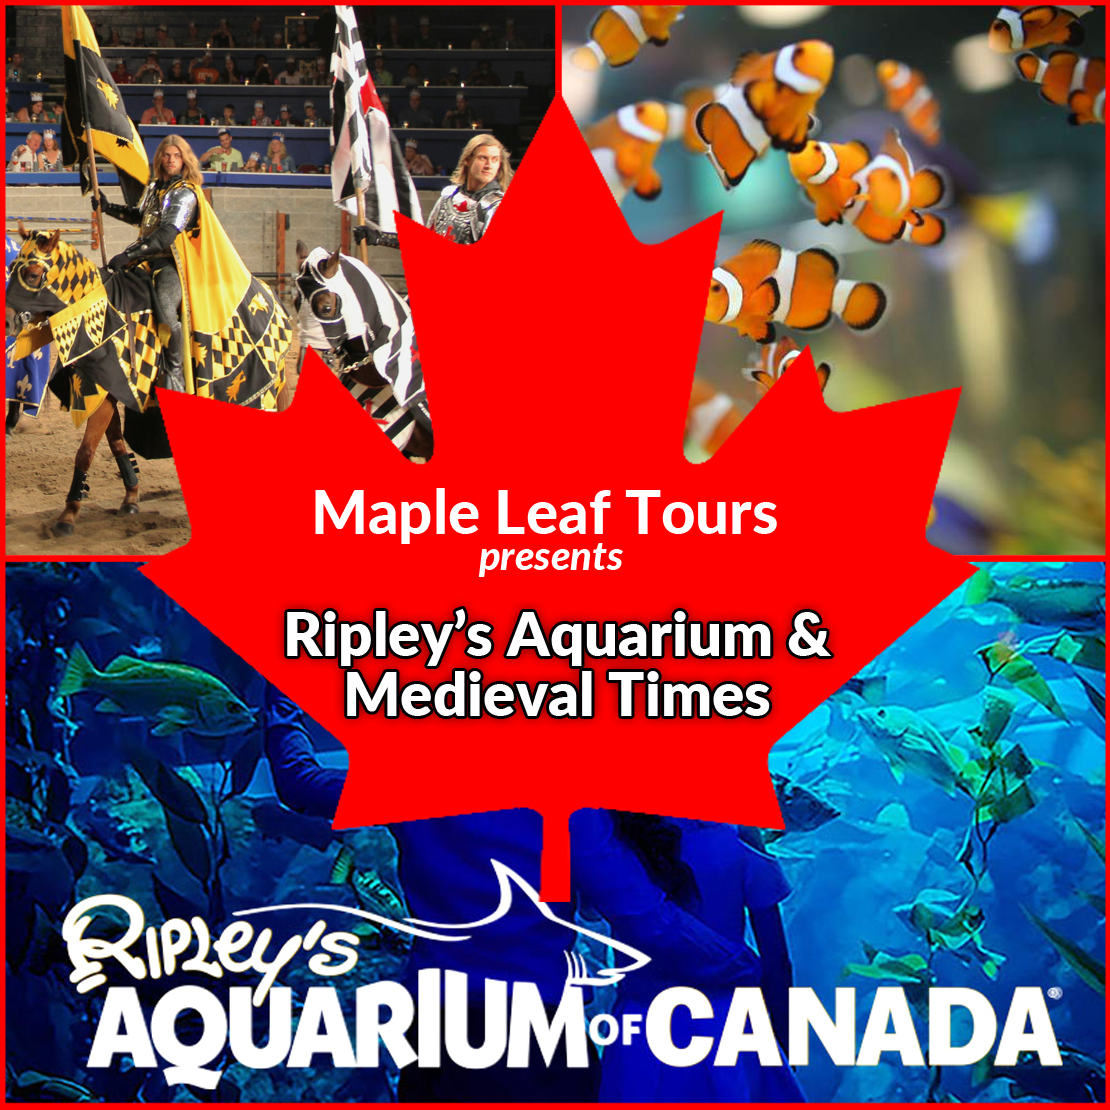 Ripley's & Medieval Times